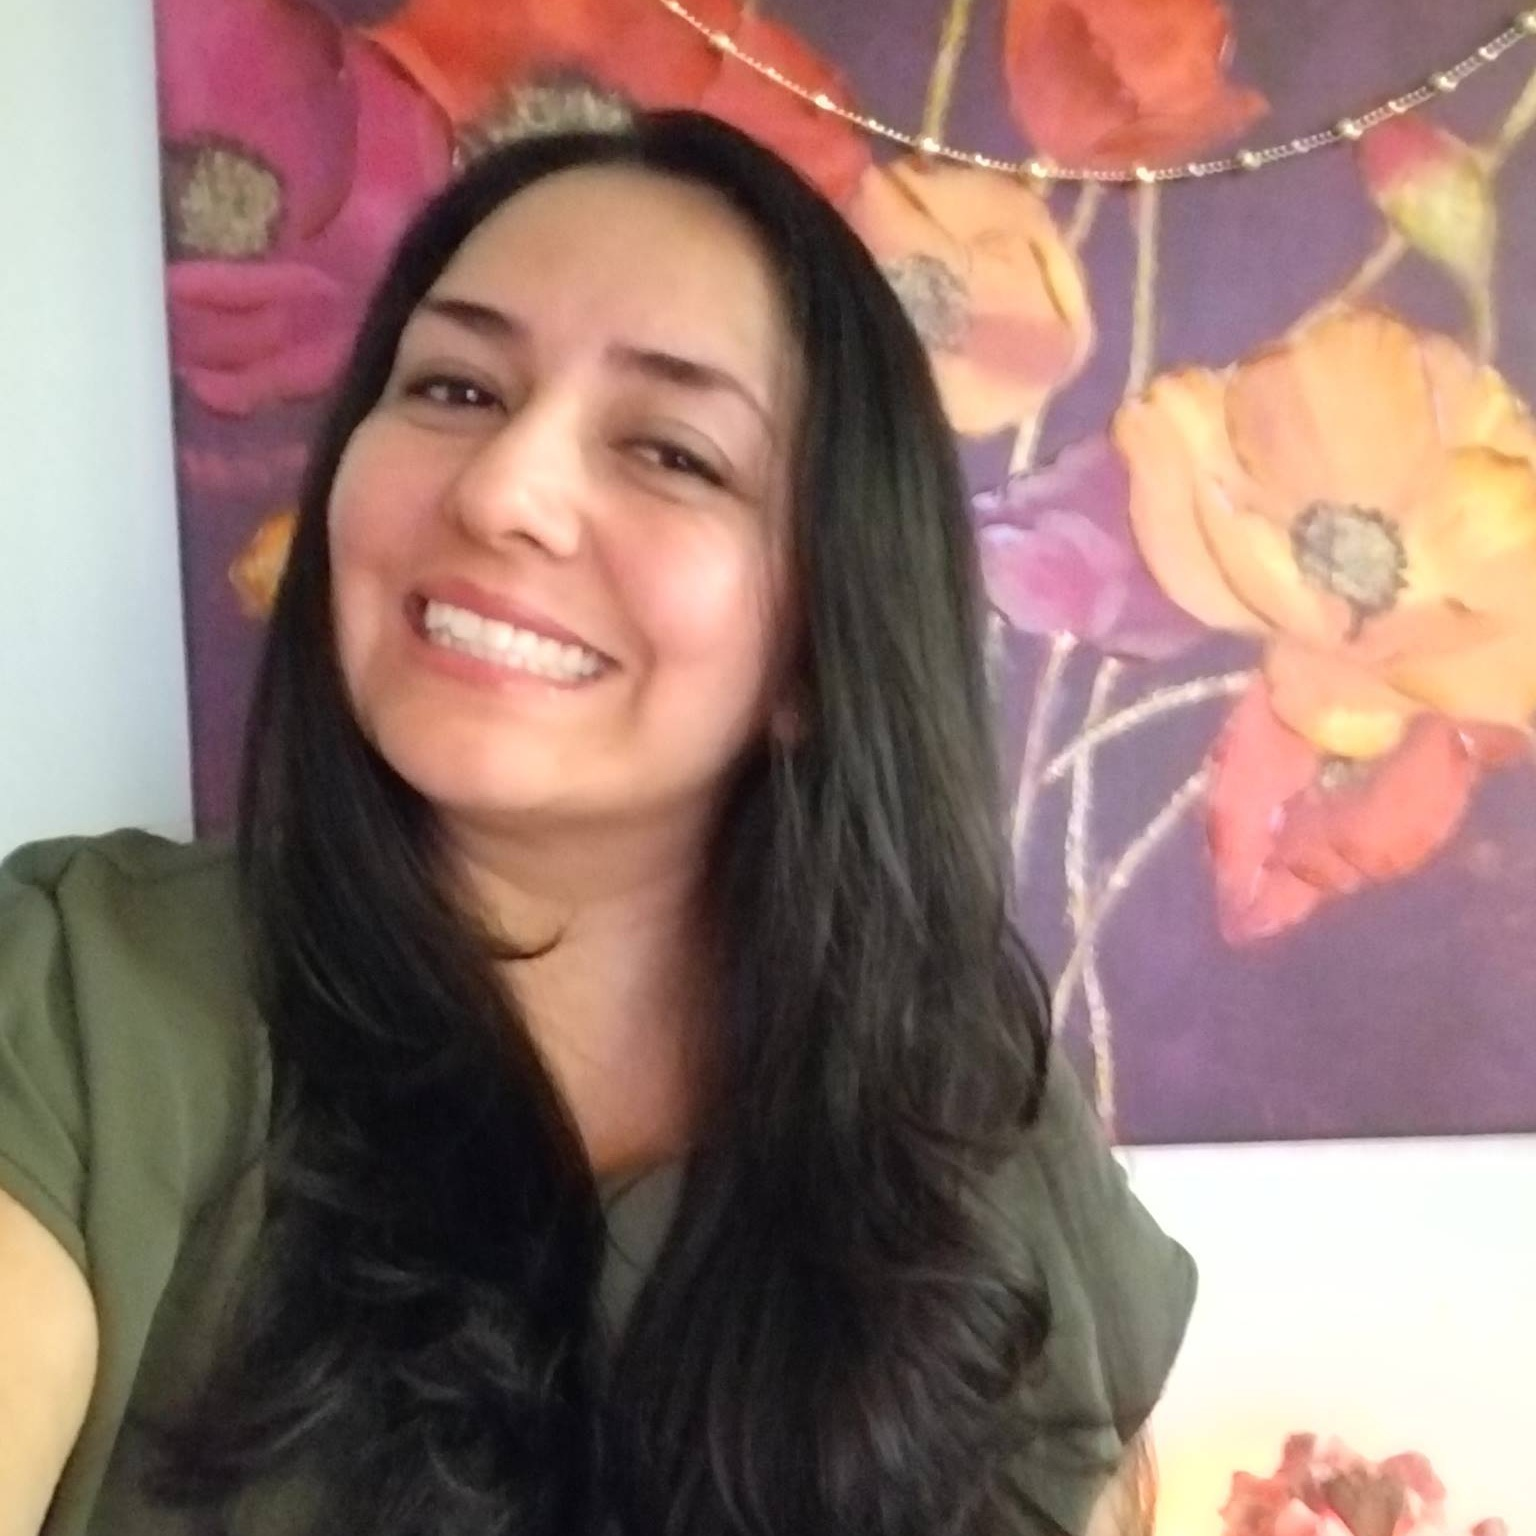 """Dr. Carolina Rodriguez - """"Love is the root medicine of healing""""Dr. Carolina Rodriguez comes from a long line of natural healers, with both of her ancestral lines, paternal and maternal, having practiced the healing arts in their respective communities. She feels honored to be entrusted as a guide for people, through their healing journey. She first received a B.S. in Mechanical Engineering at Cal Poly, San Luis Obispo, California, in 2004. Then she earned her medical degree, a Doctorate in Naturopathic Medicine, at Southwest College of Naturopathic Medicine in 2012. Since then, she's worked alongside prominent physicians in order to craft her medical skills, even adding regenerative medicine as a tool for optimal healing. She also founded her own company, Natural and Regenerative IMS, in 2018, through which she teaches and collaborates on medical treatments with other physicians. Located in the Phoenix area, she sees local and international patients. She enjoys life with the love of her life, Alex, and their two cats, Toops and Princess Dahlia."""